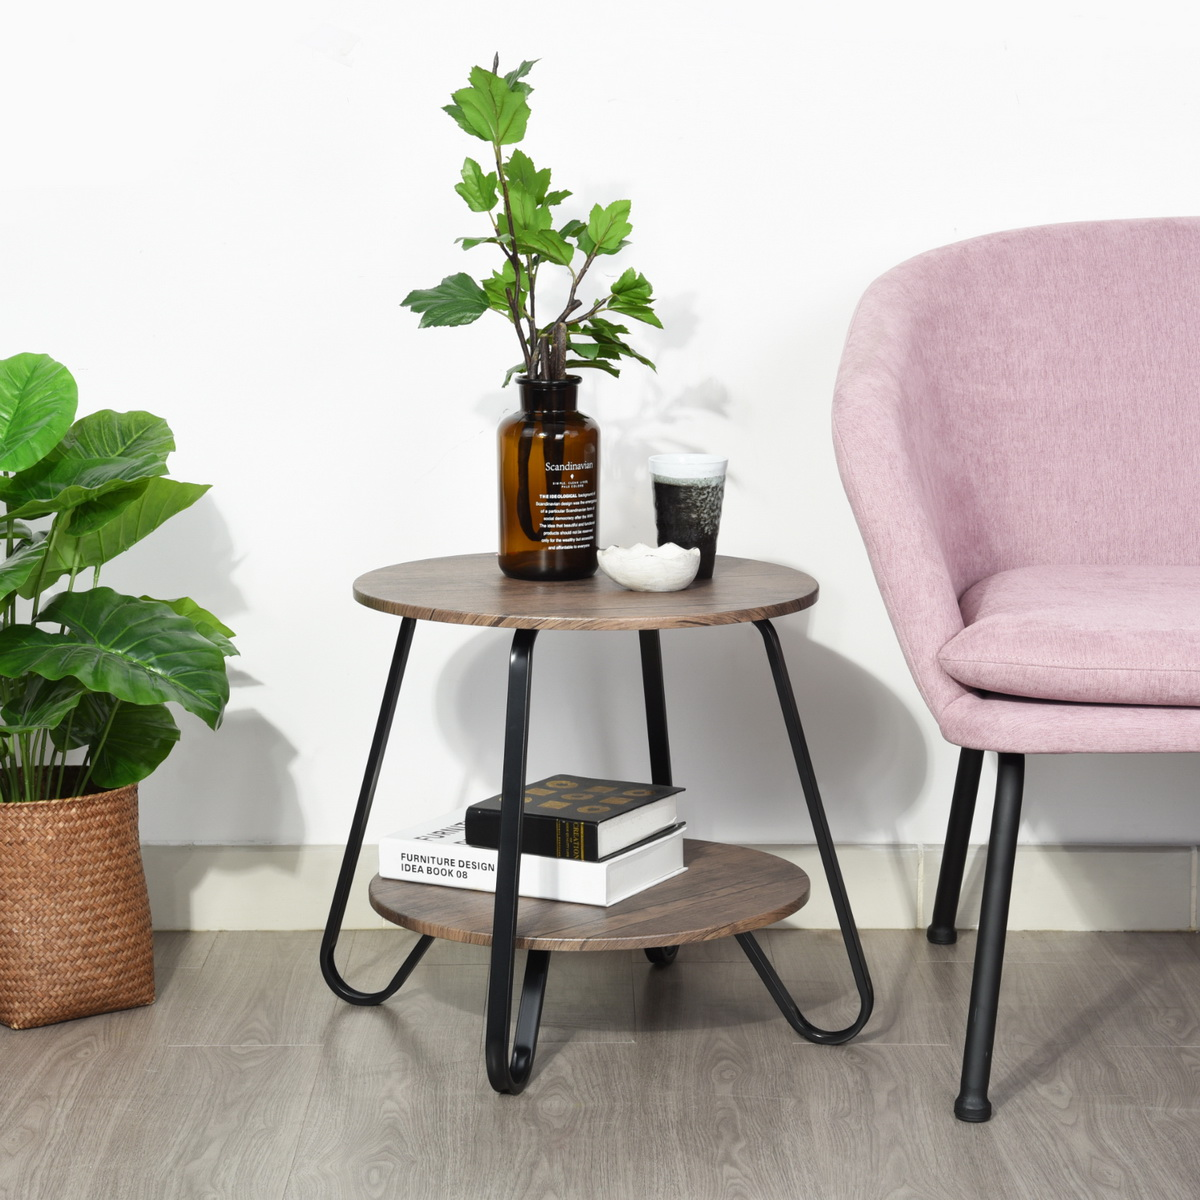 Round Table Top Li Storage Shelf, Small Round End Table With Drawer